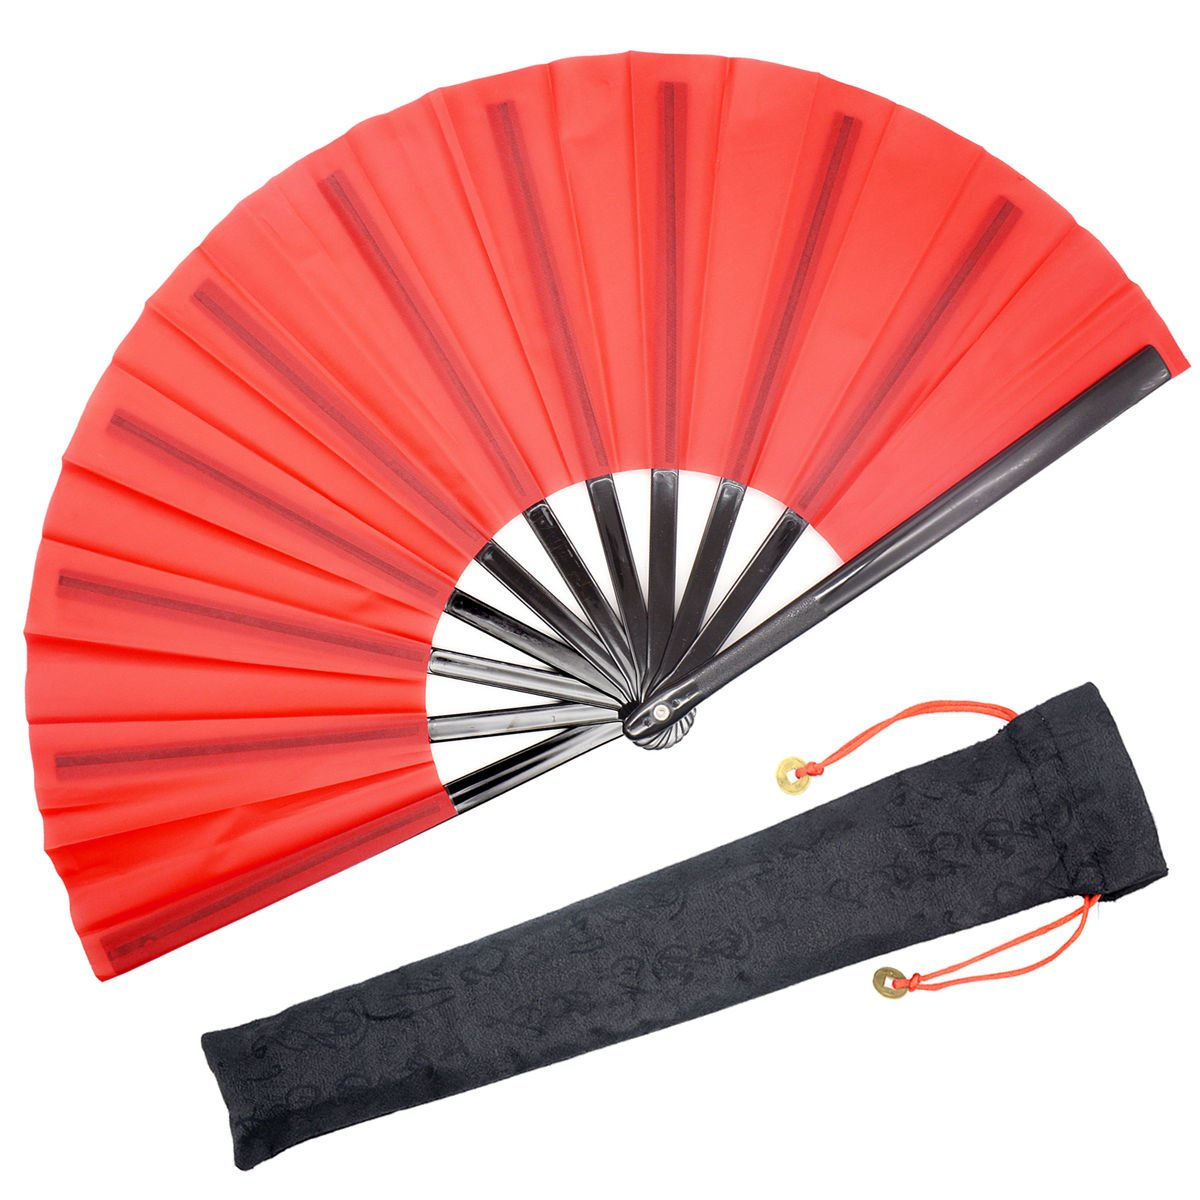 OMyTea Chinese Kung Fu Tai Chi Large Hand Folding Fan for Men / Women - With a Fabric Case for Protection - For Performance / Dance / Fighting / Gift (Blue) Kung Fu Fan-Blue